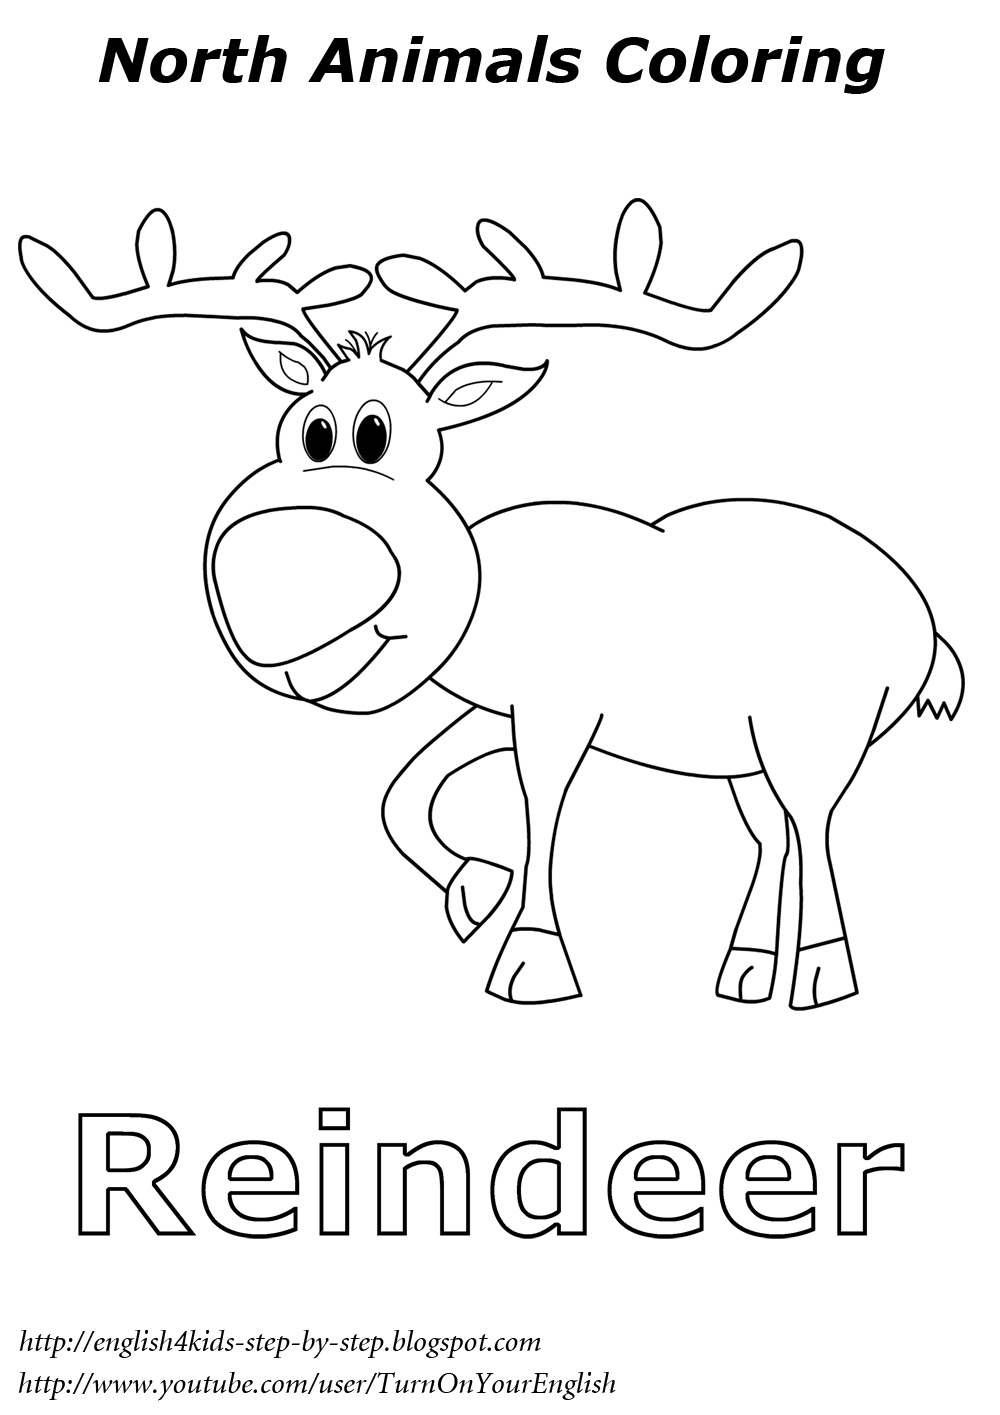 coloring pages of arctic animals - photo#25